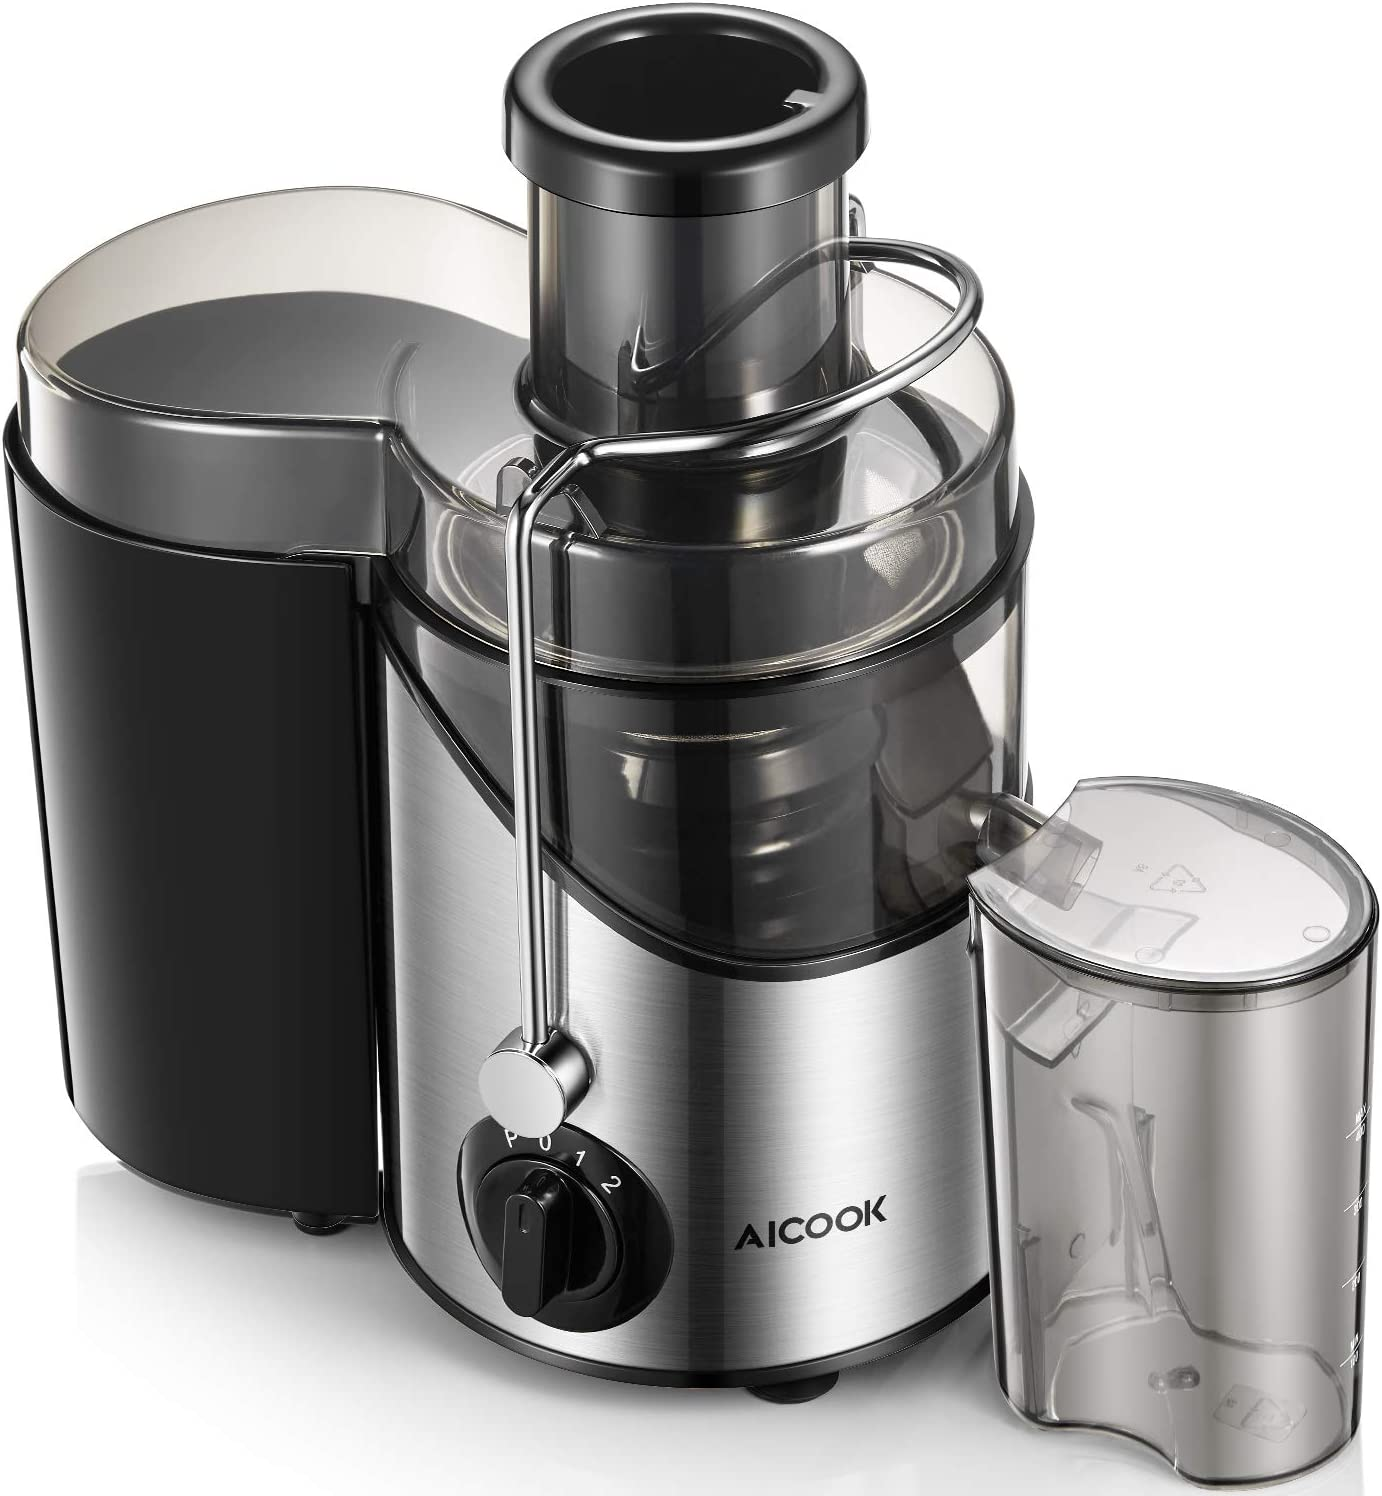 Juicer, Aicook Upgrade Juice Extractor with 3 Wide Mouth, 3 Speed Centrifugal Juicer Machine for Fruits and Vegs, Non-Slip Feet, BPA-Free, Fast and Easy Clean